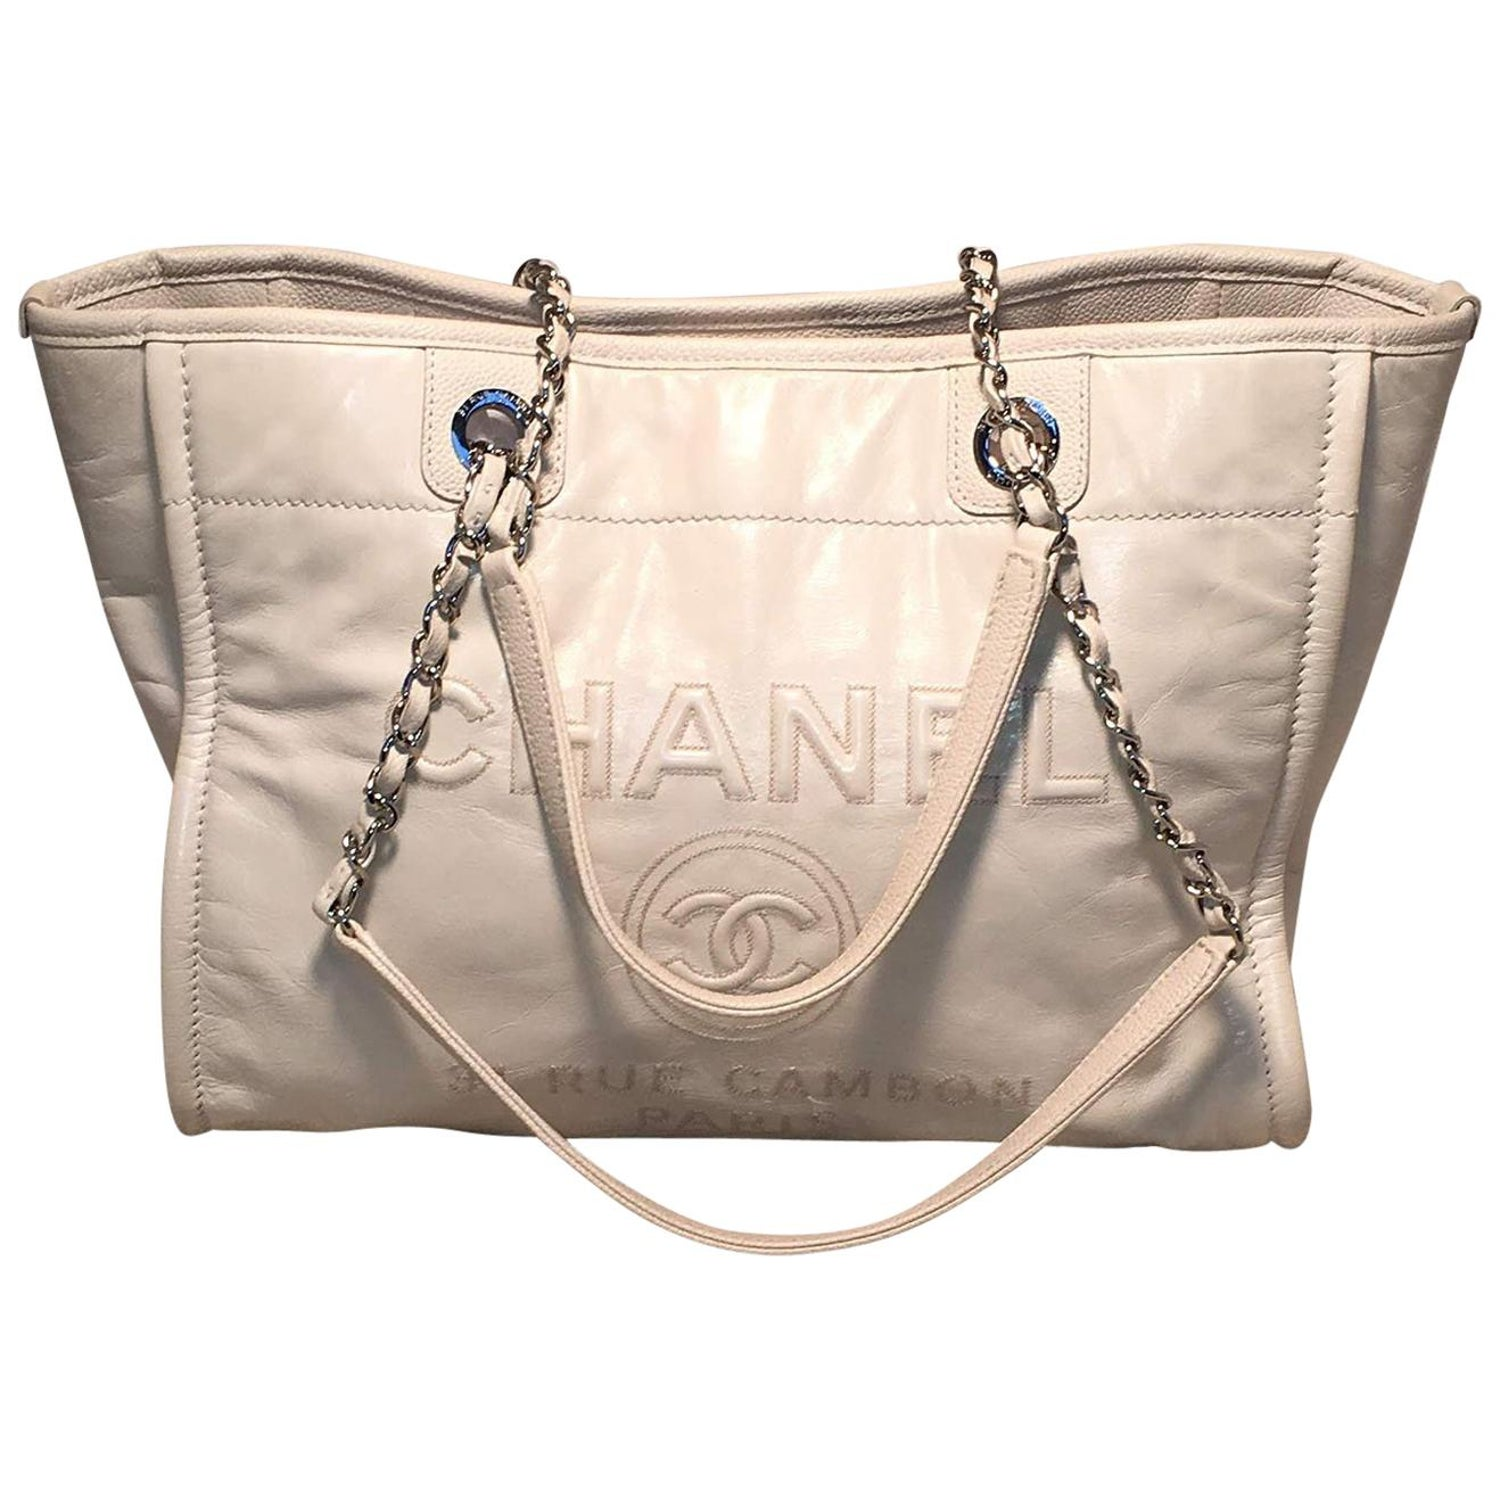 b609157ba8b3 Chanel White Glazed Leather Deauville Shopping Bag Tote For Sale at 1stdibs